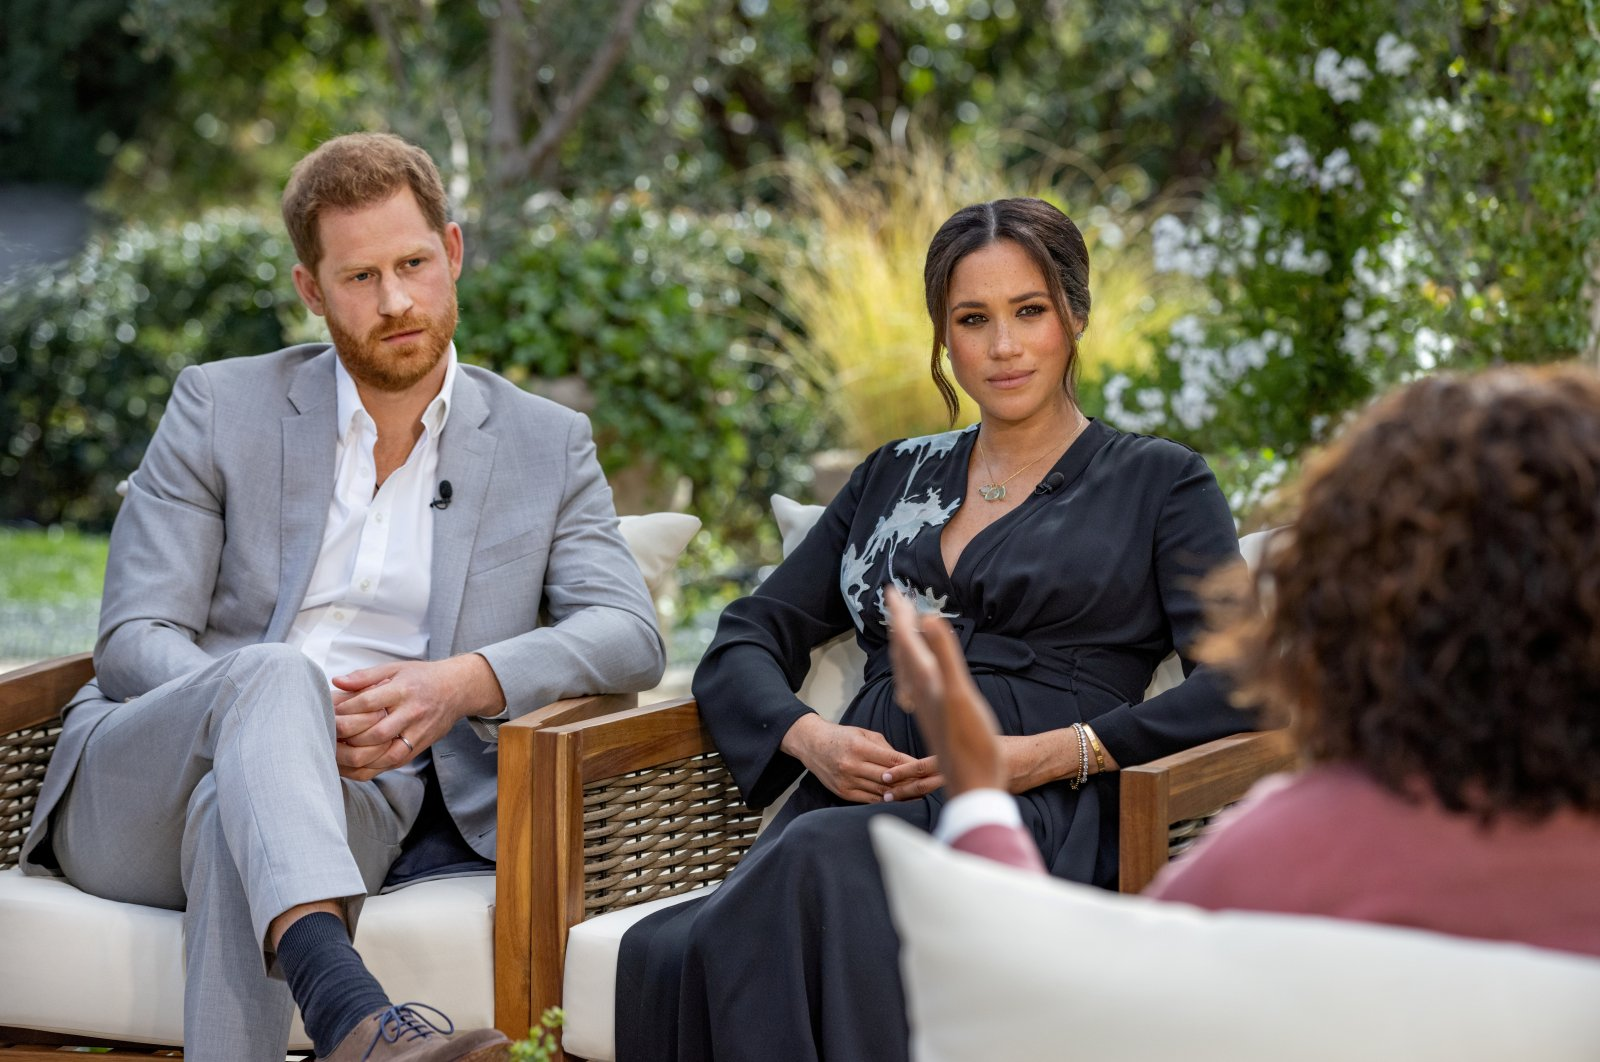 Britain's Prince Harry and Meghan, Duchess of Sussex, are interviewed by Oprah Winfrey in this undated handout photo. (Reuters Photo)